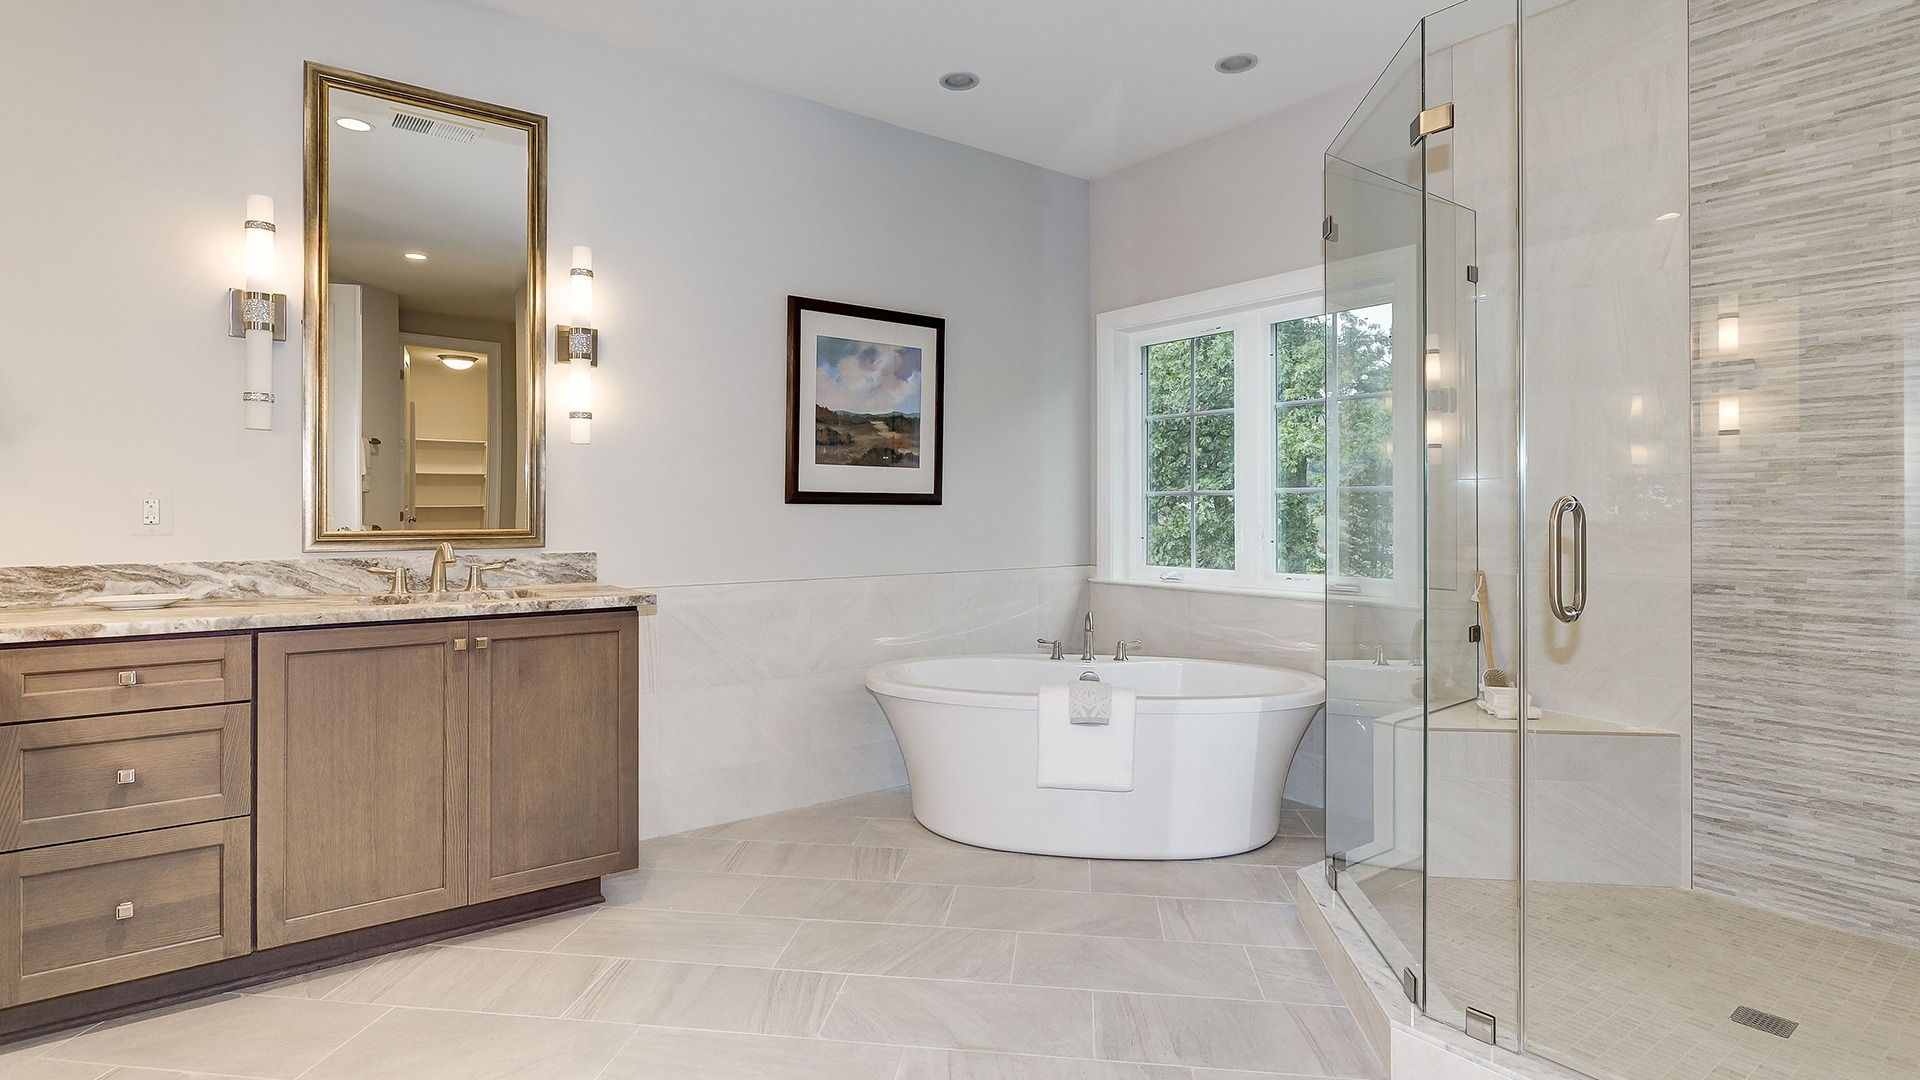 Winthrop Owner's Bath. Some optional features shown.